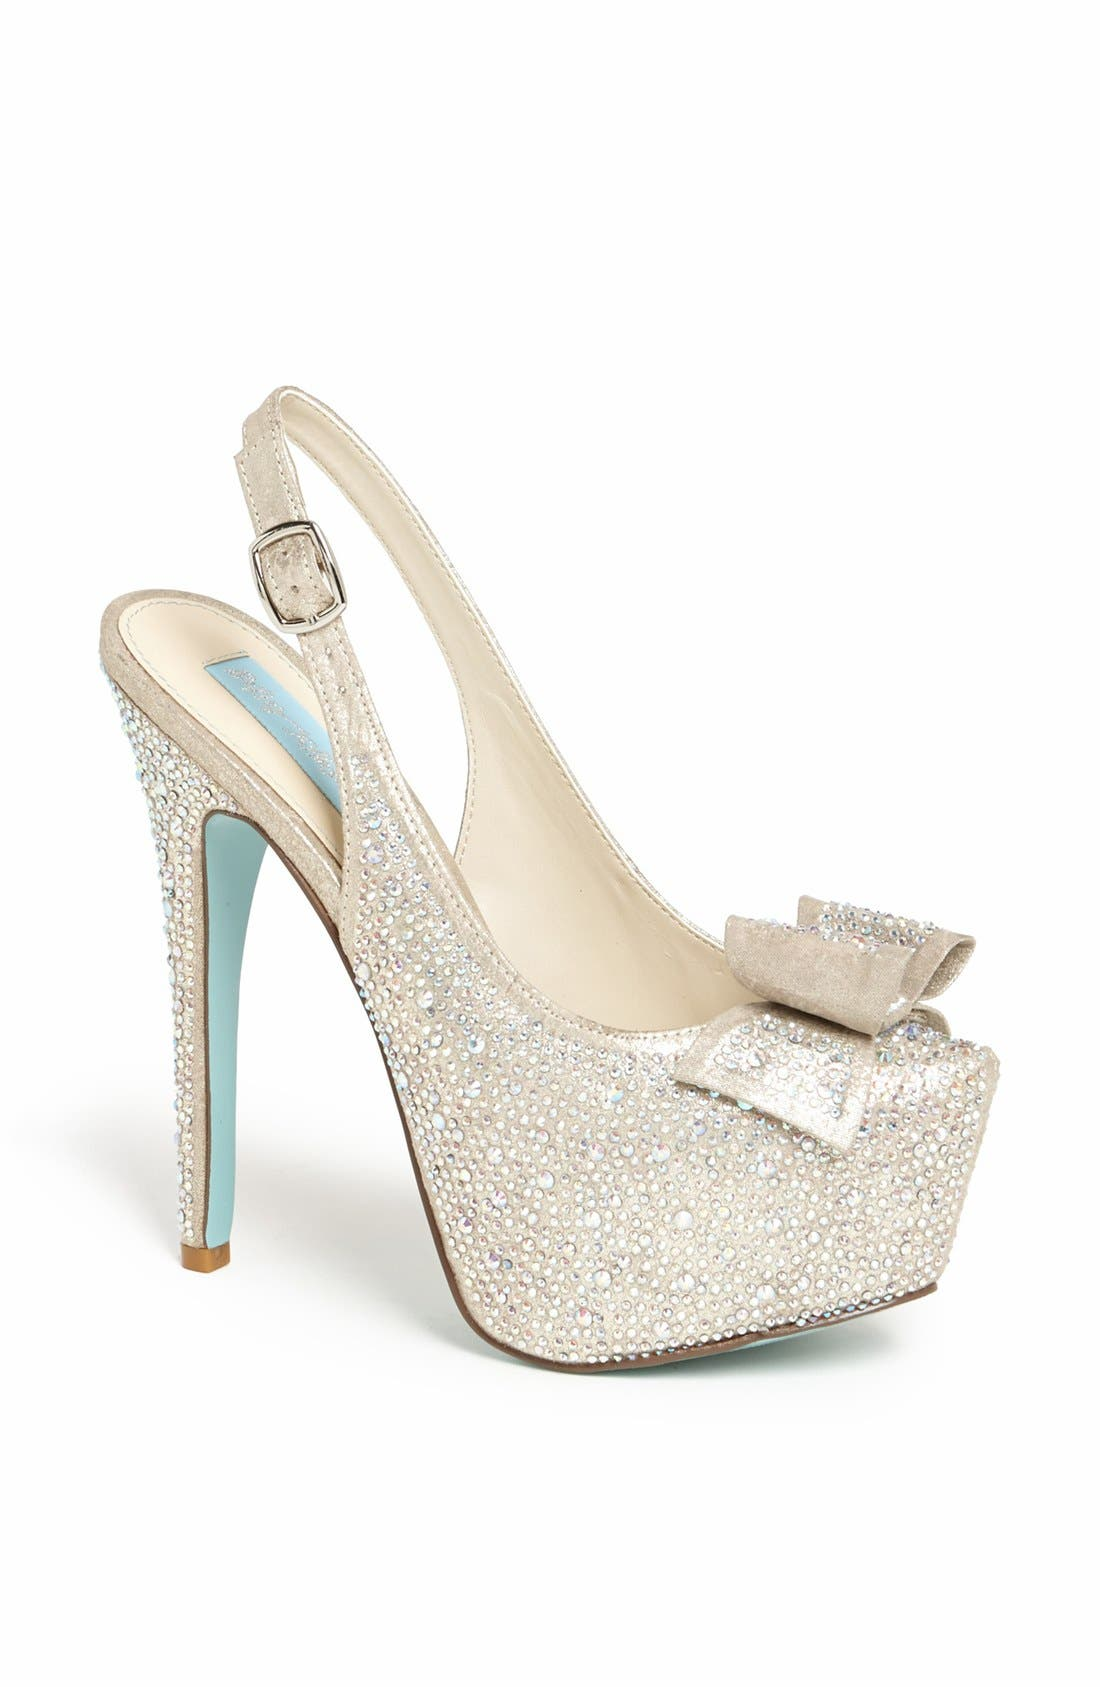 Alternate Image 1 Selected - Blue by Betsey Johnson 'Toast' Pump